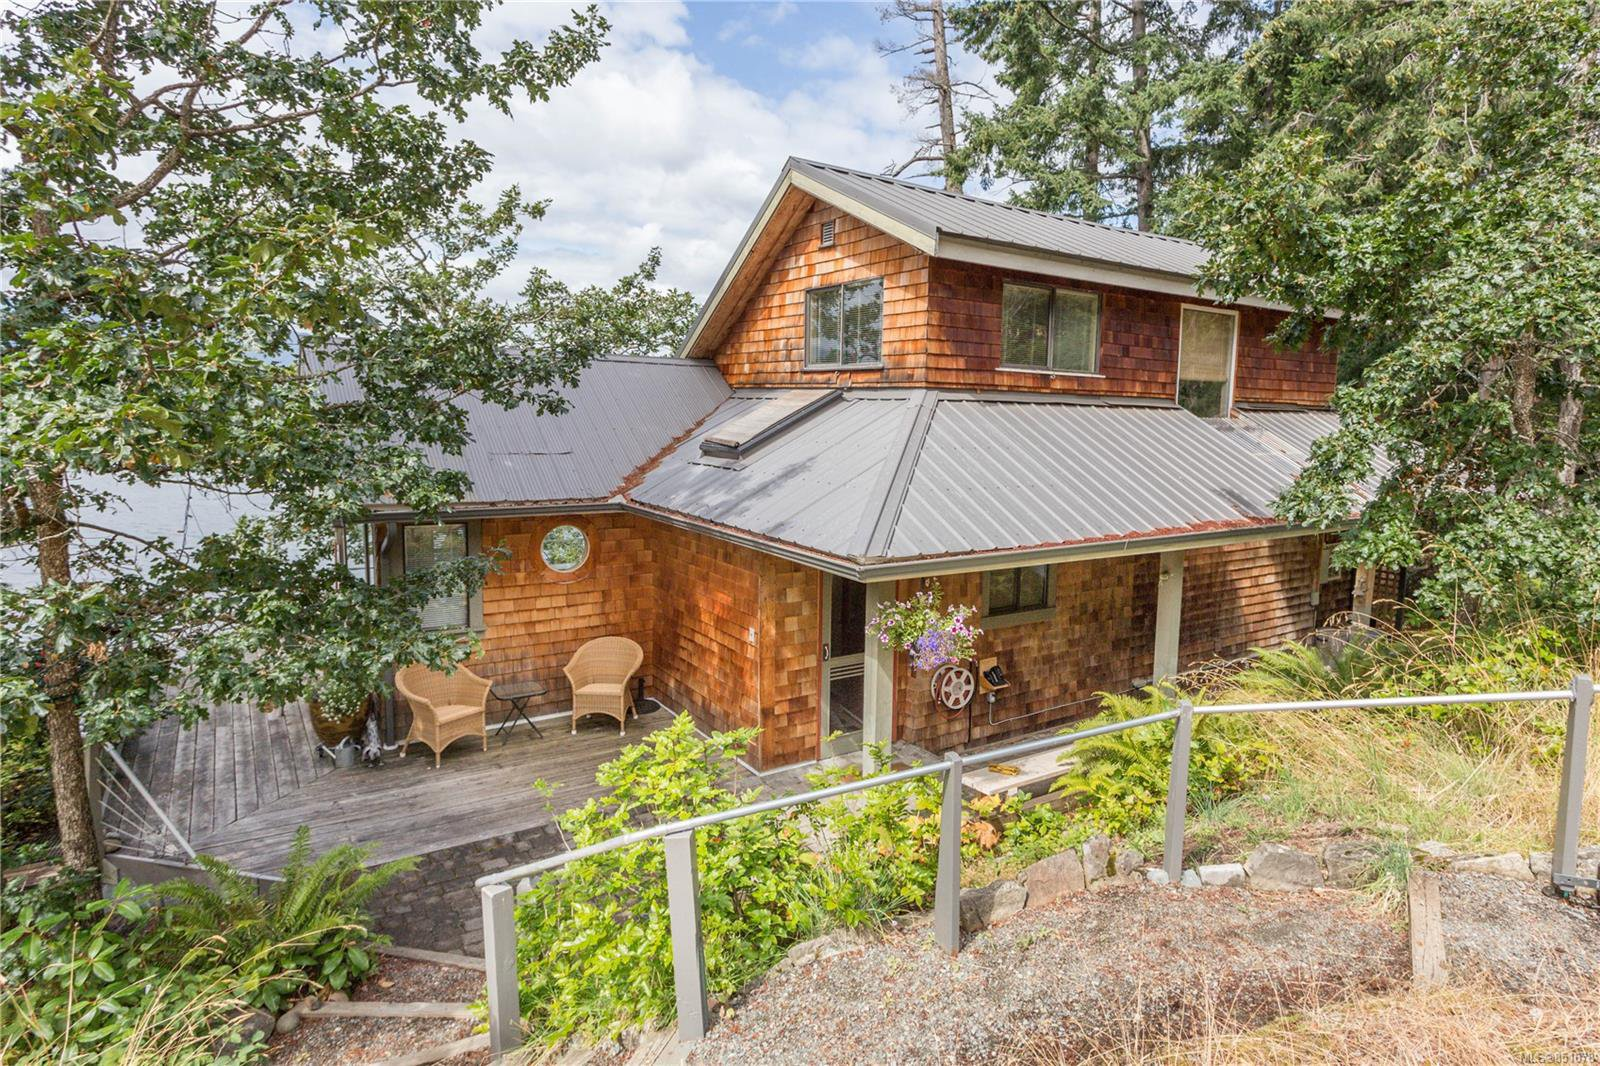 Photo 2: Photos: 262 Forbes Dr in : Isl Thetis Island House for sale (Islands)  : MLS®# 851678